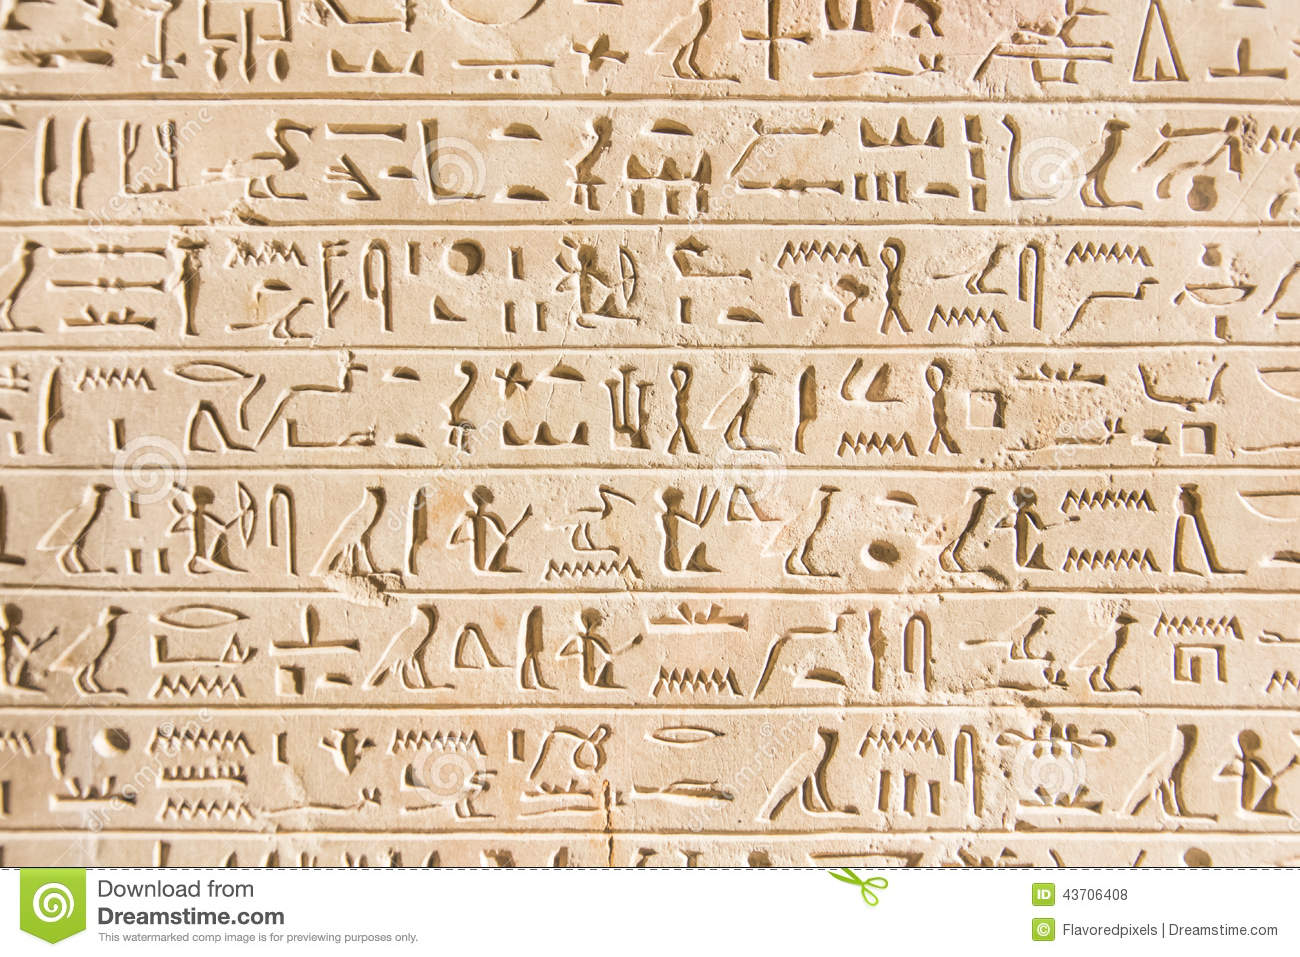 https://thumbs.dreamstime.com/z/egyptian-hieroglyph-hieroglyphs-engraved-ancient-stone-wall-43706408.jpg